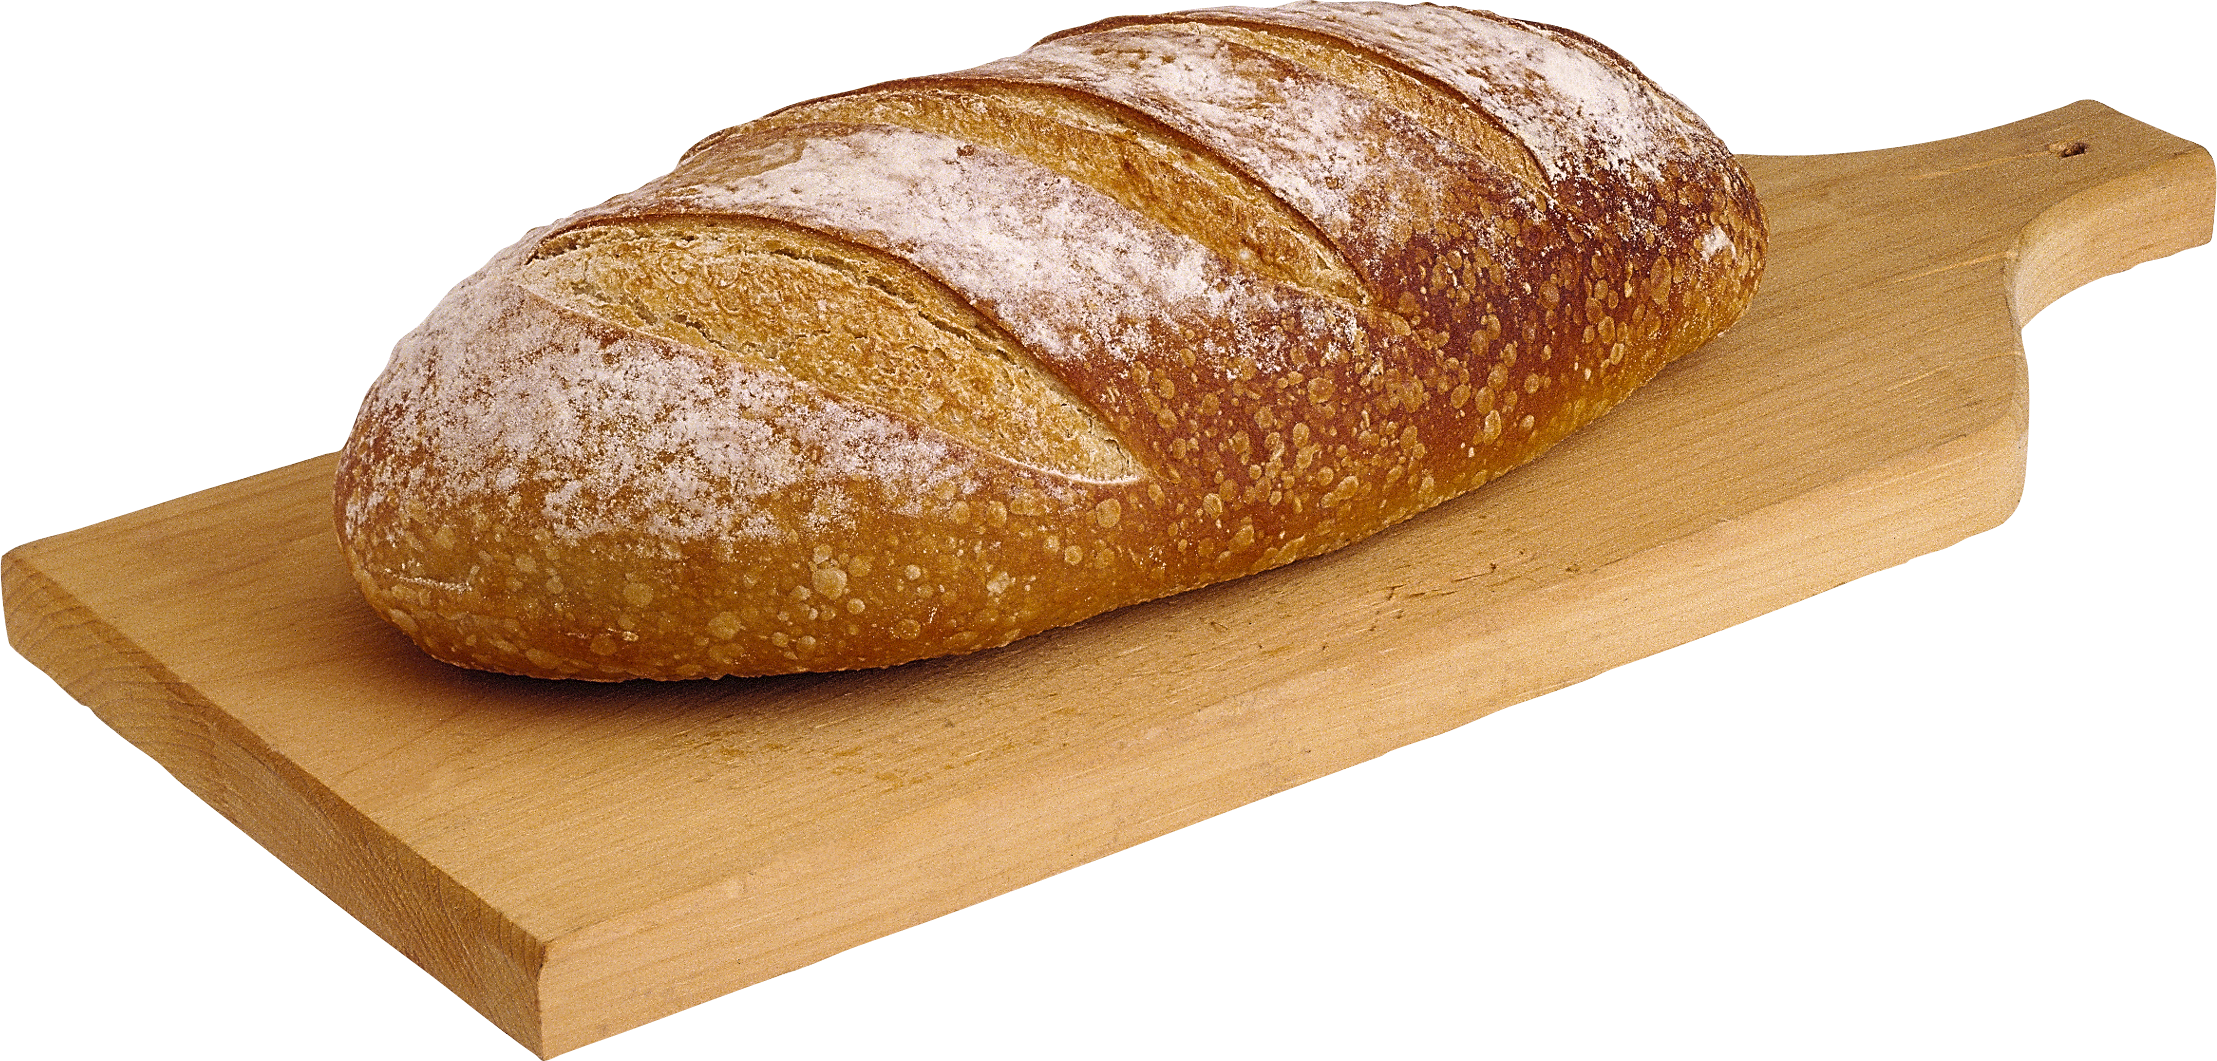 Png image . Make clipart bread